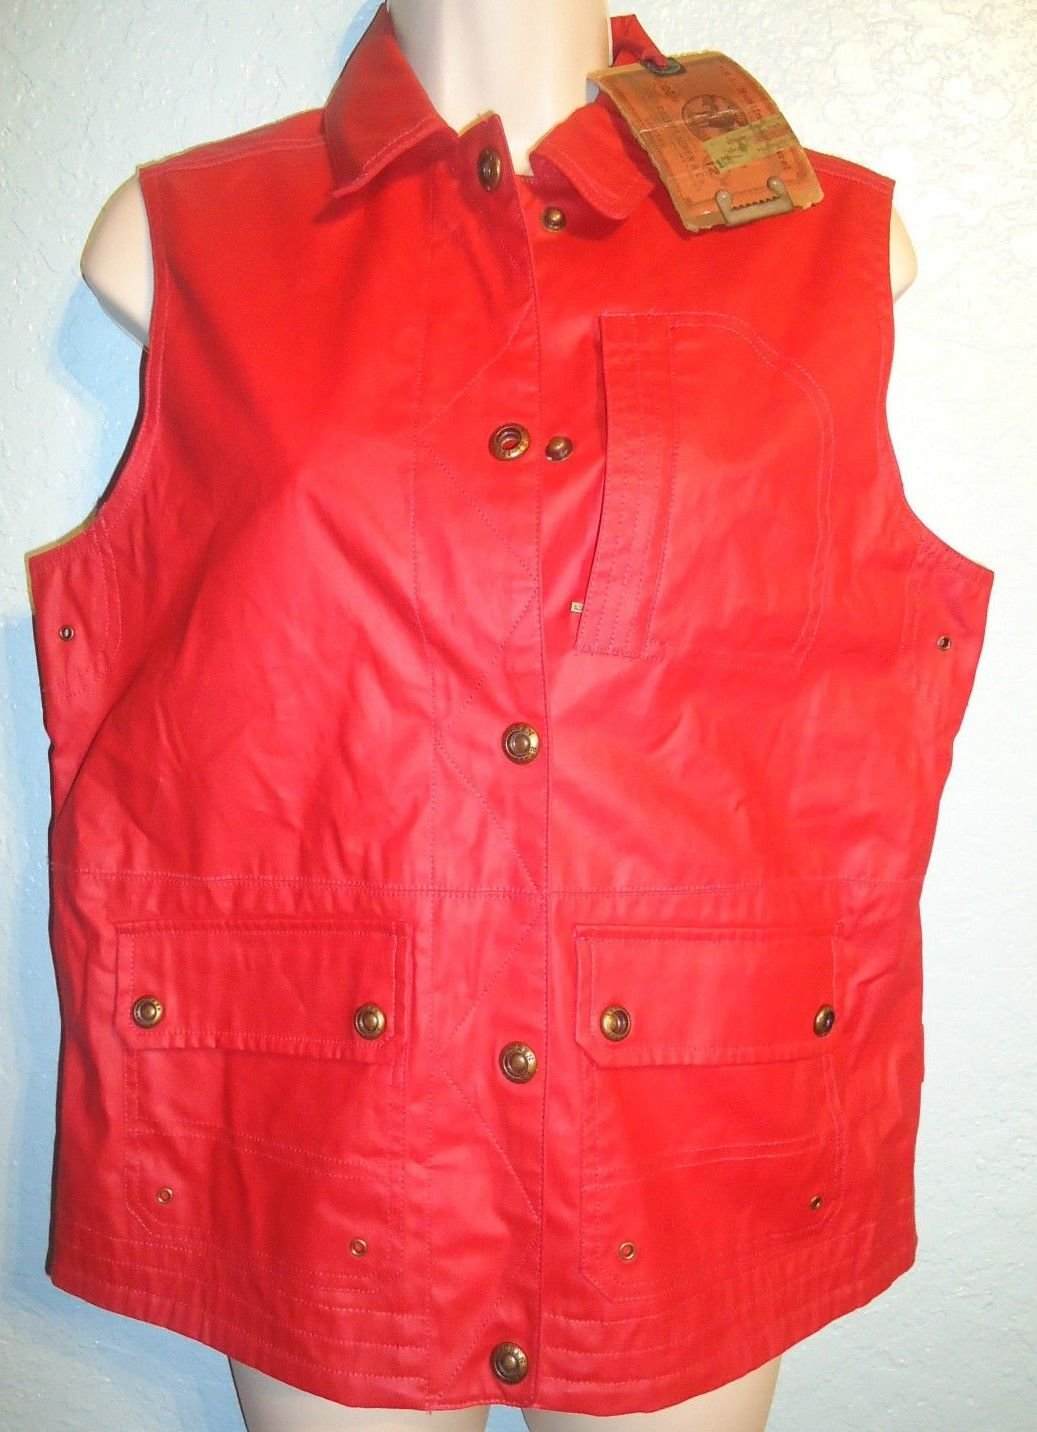 RALPH LAUREN - POLO - RL - RED - MILITARY - YACHT - NAVAL - VEST - SMALL - NEW